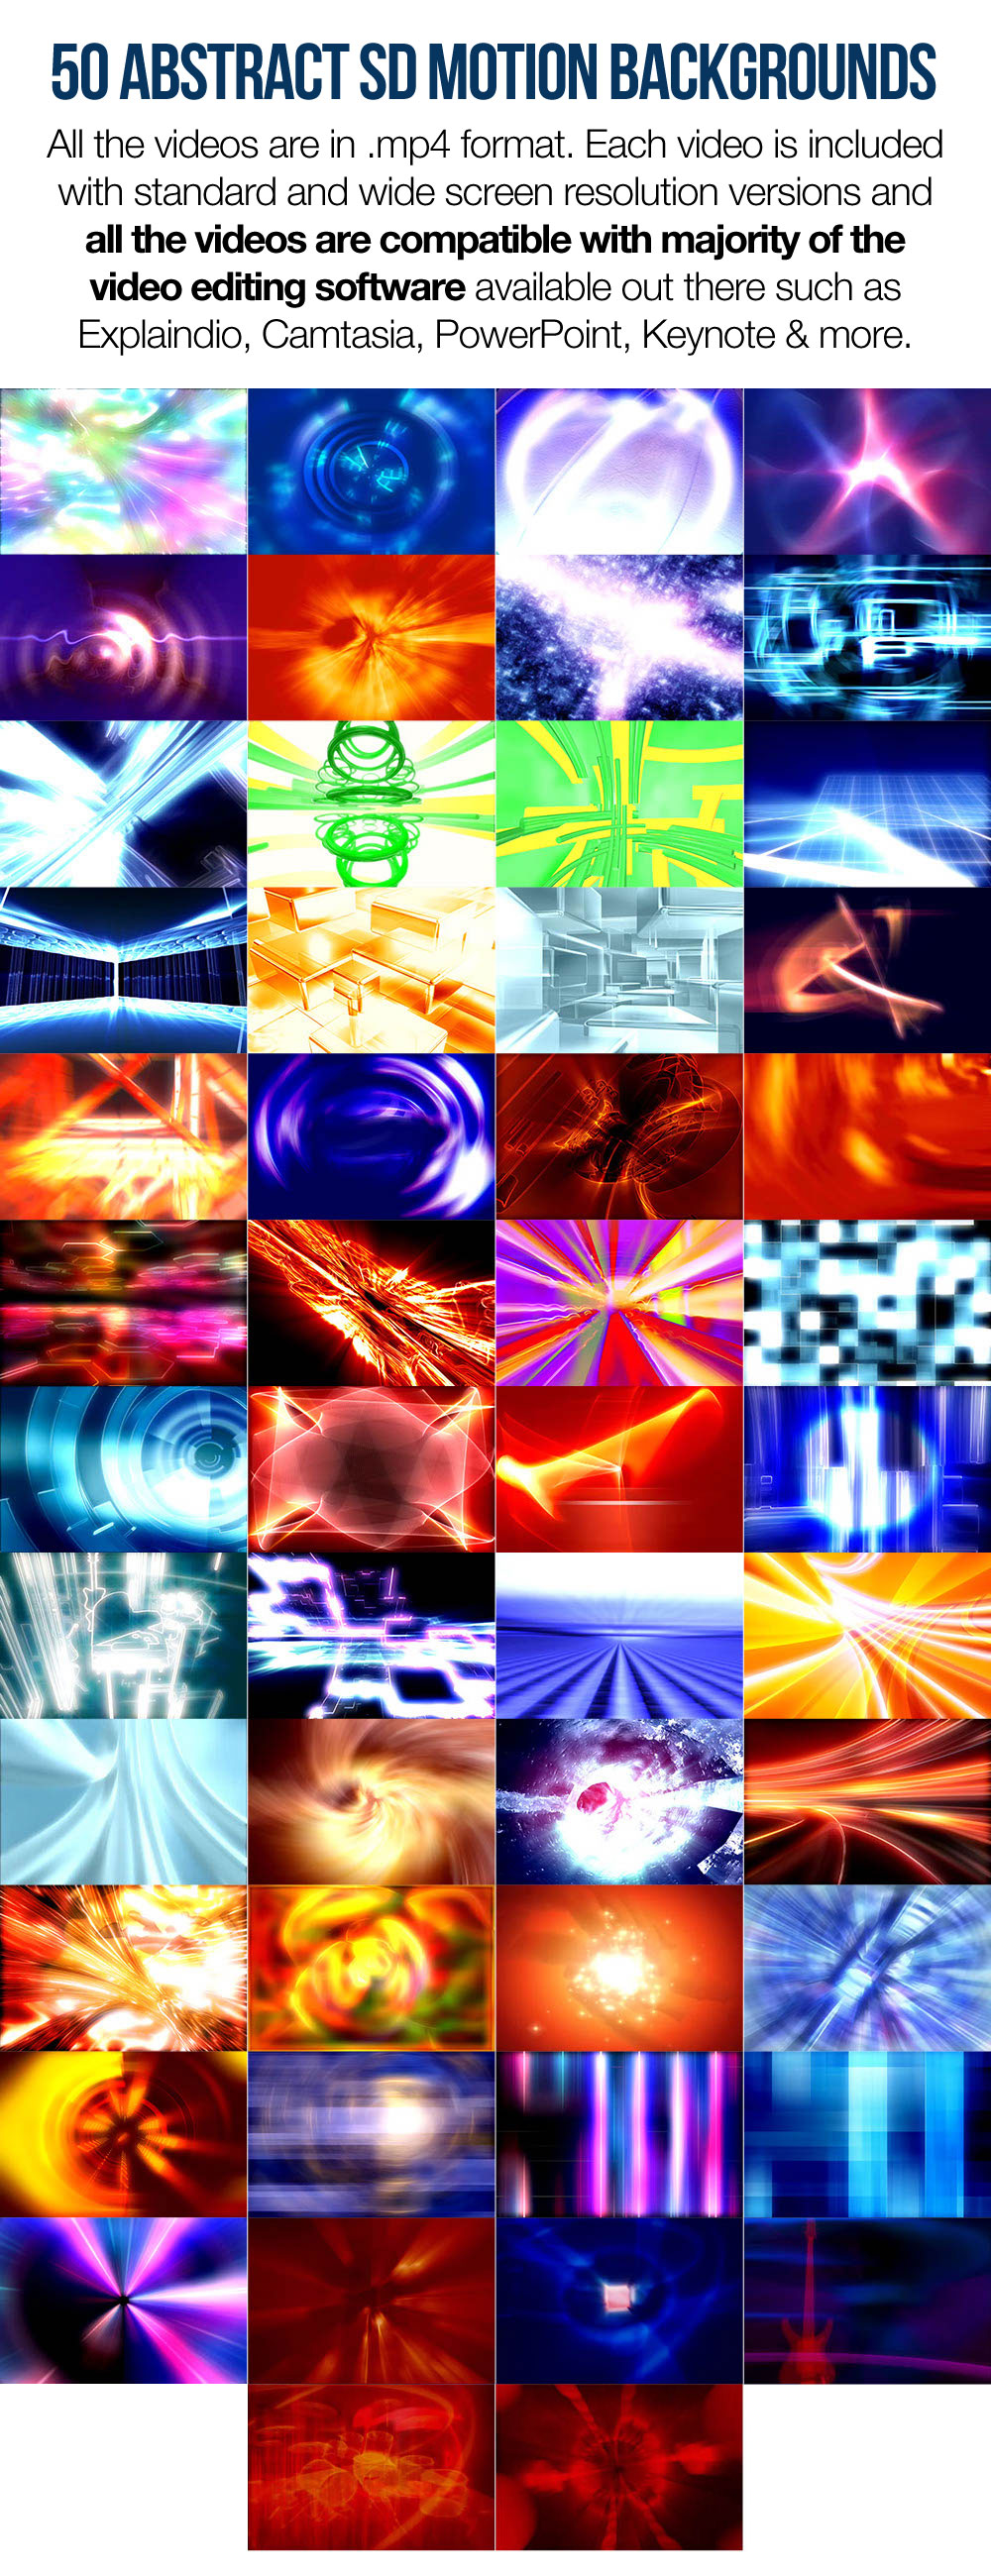 50AbstractSDMotionBackgrounds